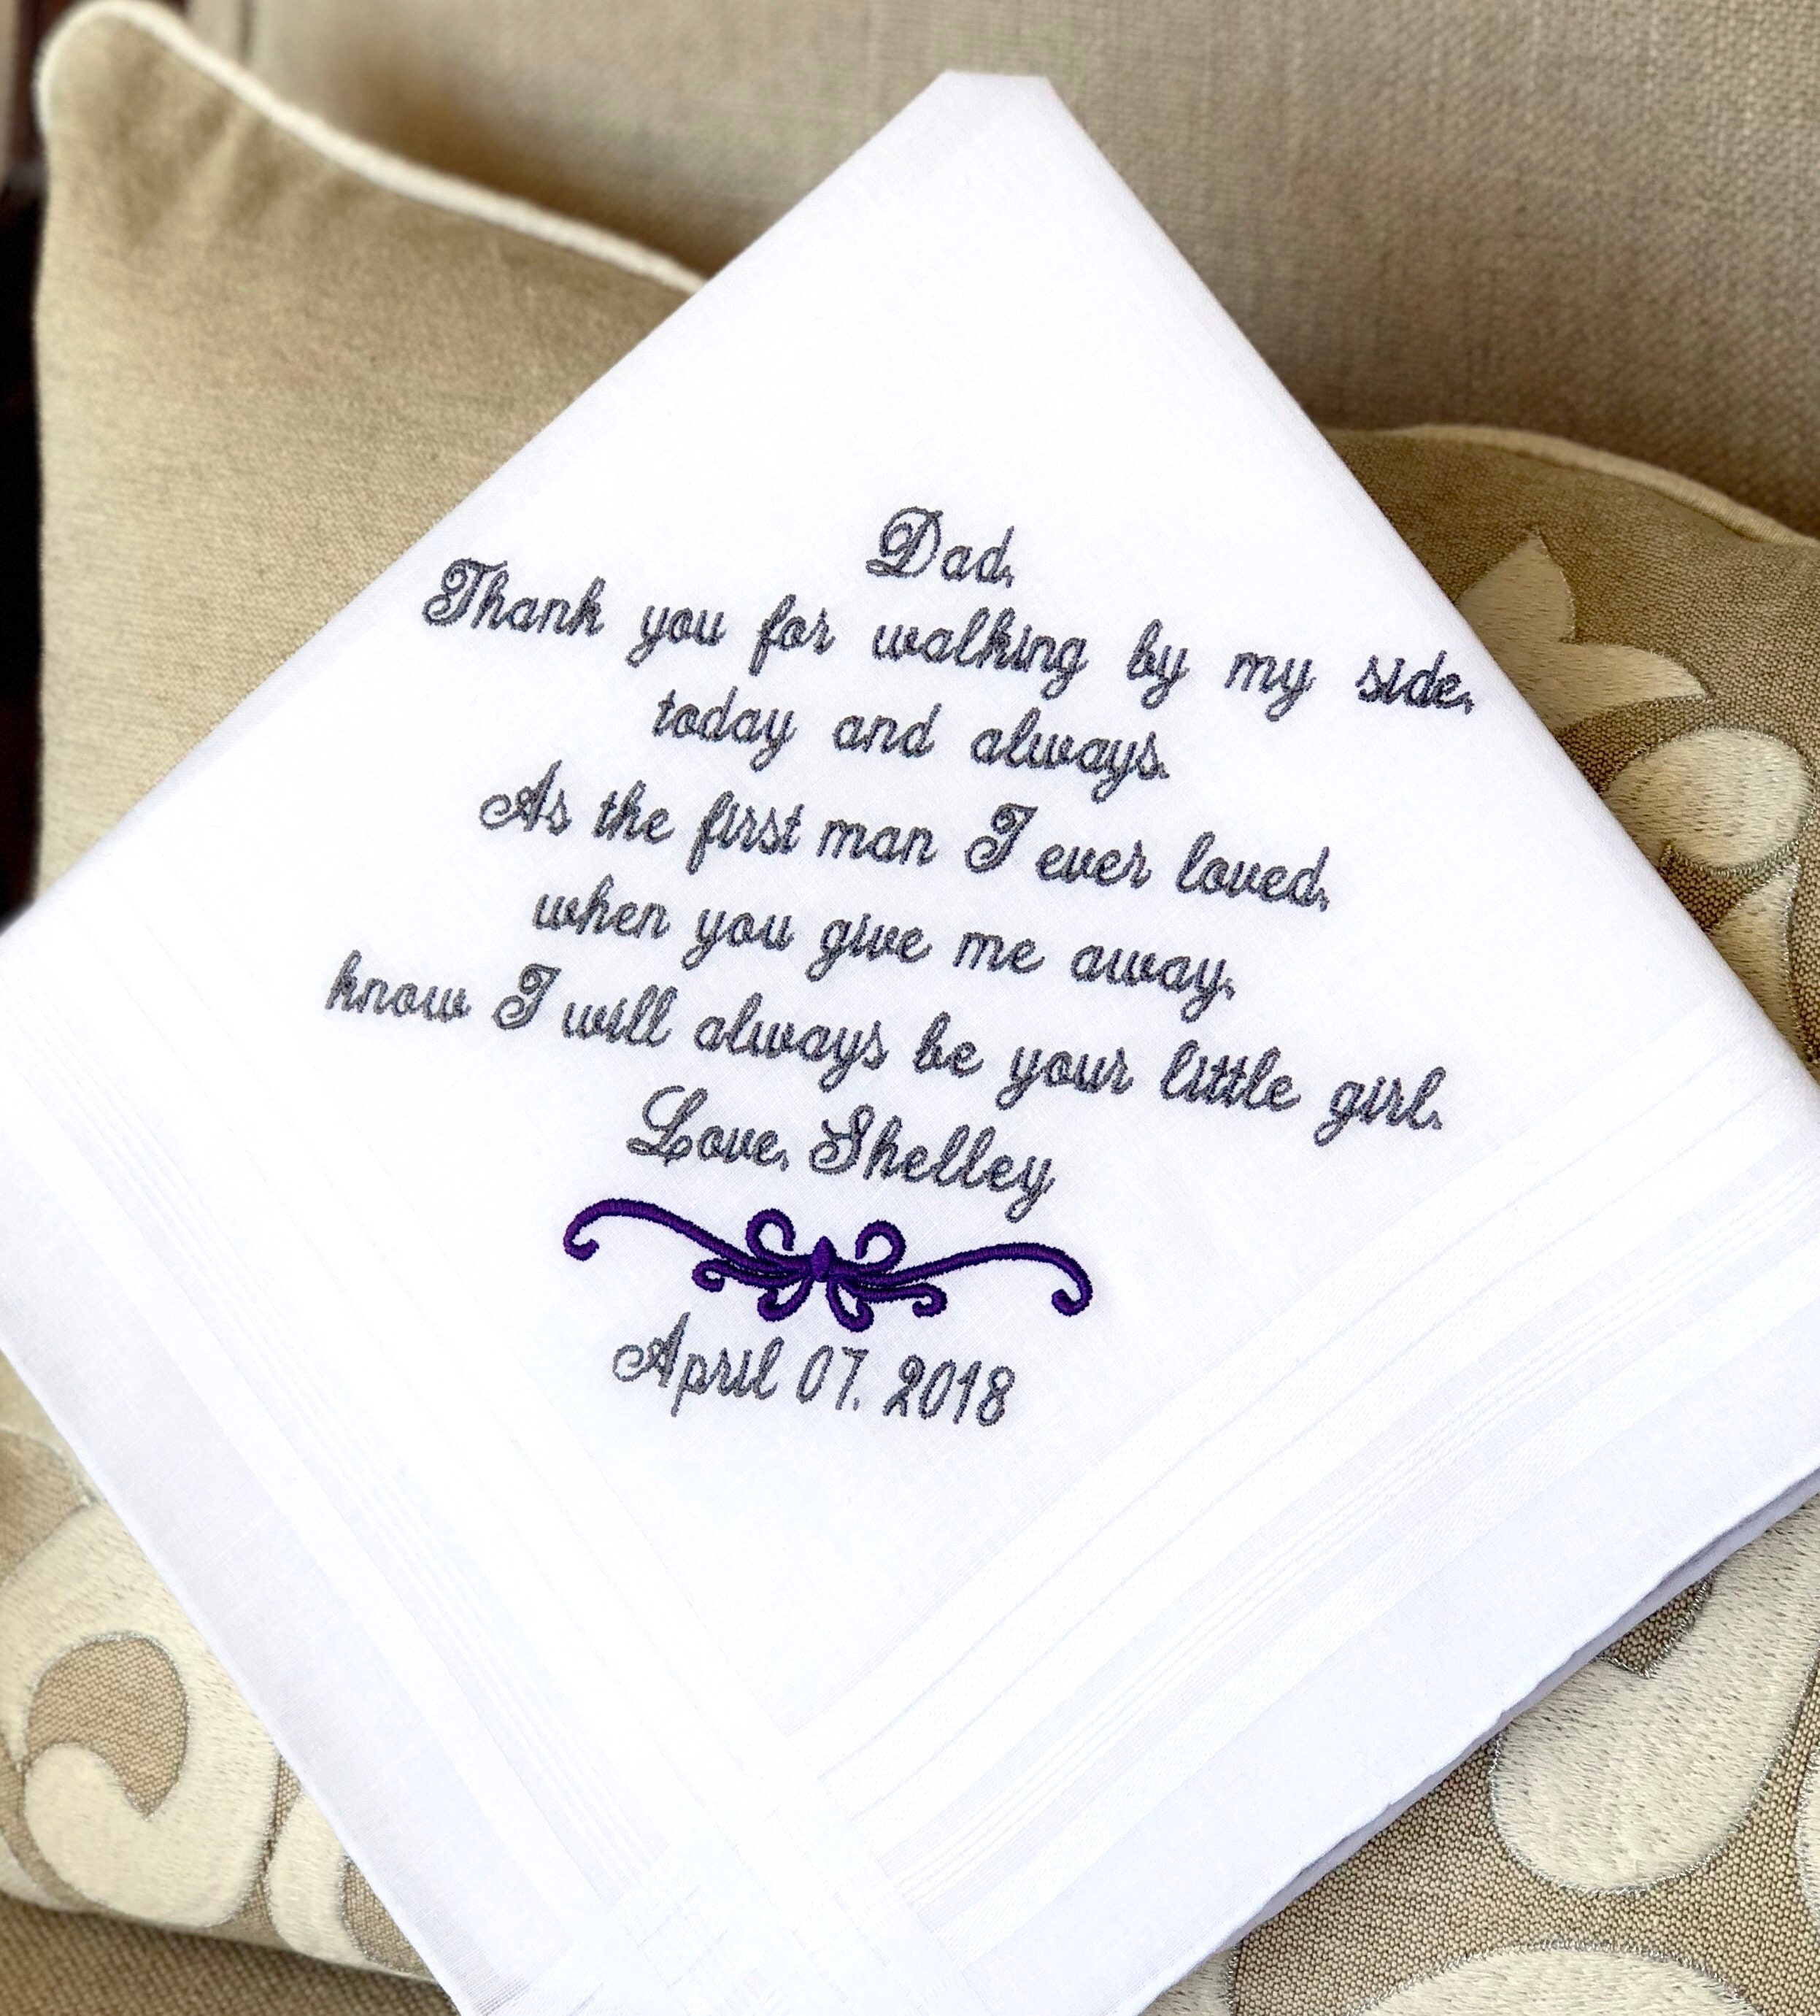 Father Of The Bride Gifts: Father Of The Bride Gift Wedding Gift For Dad WALKING My